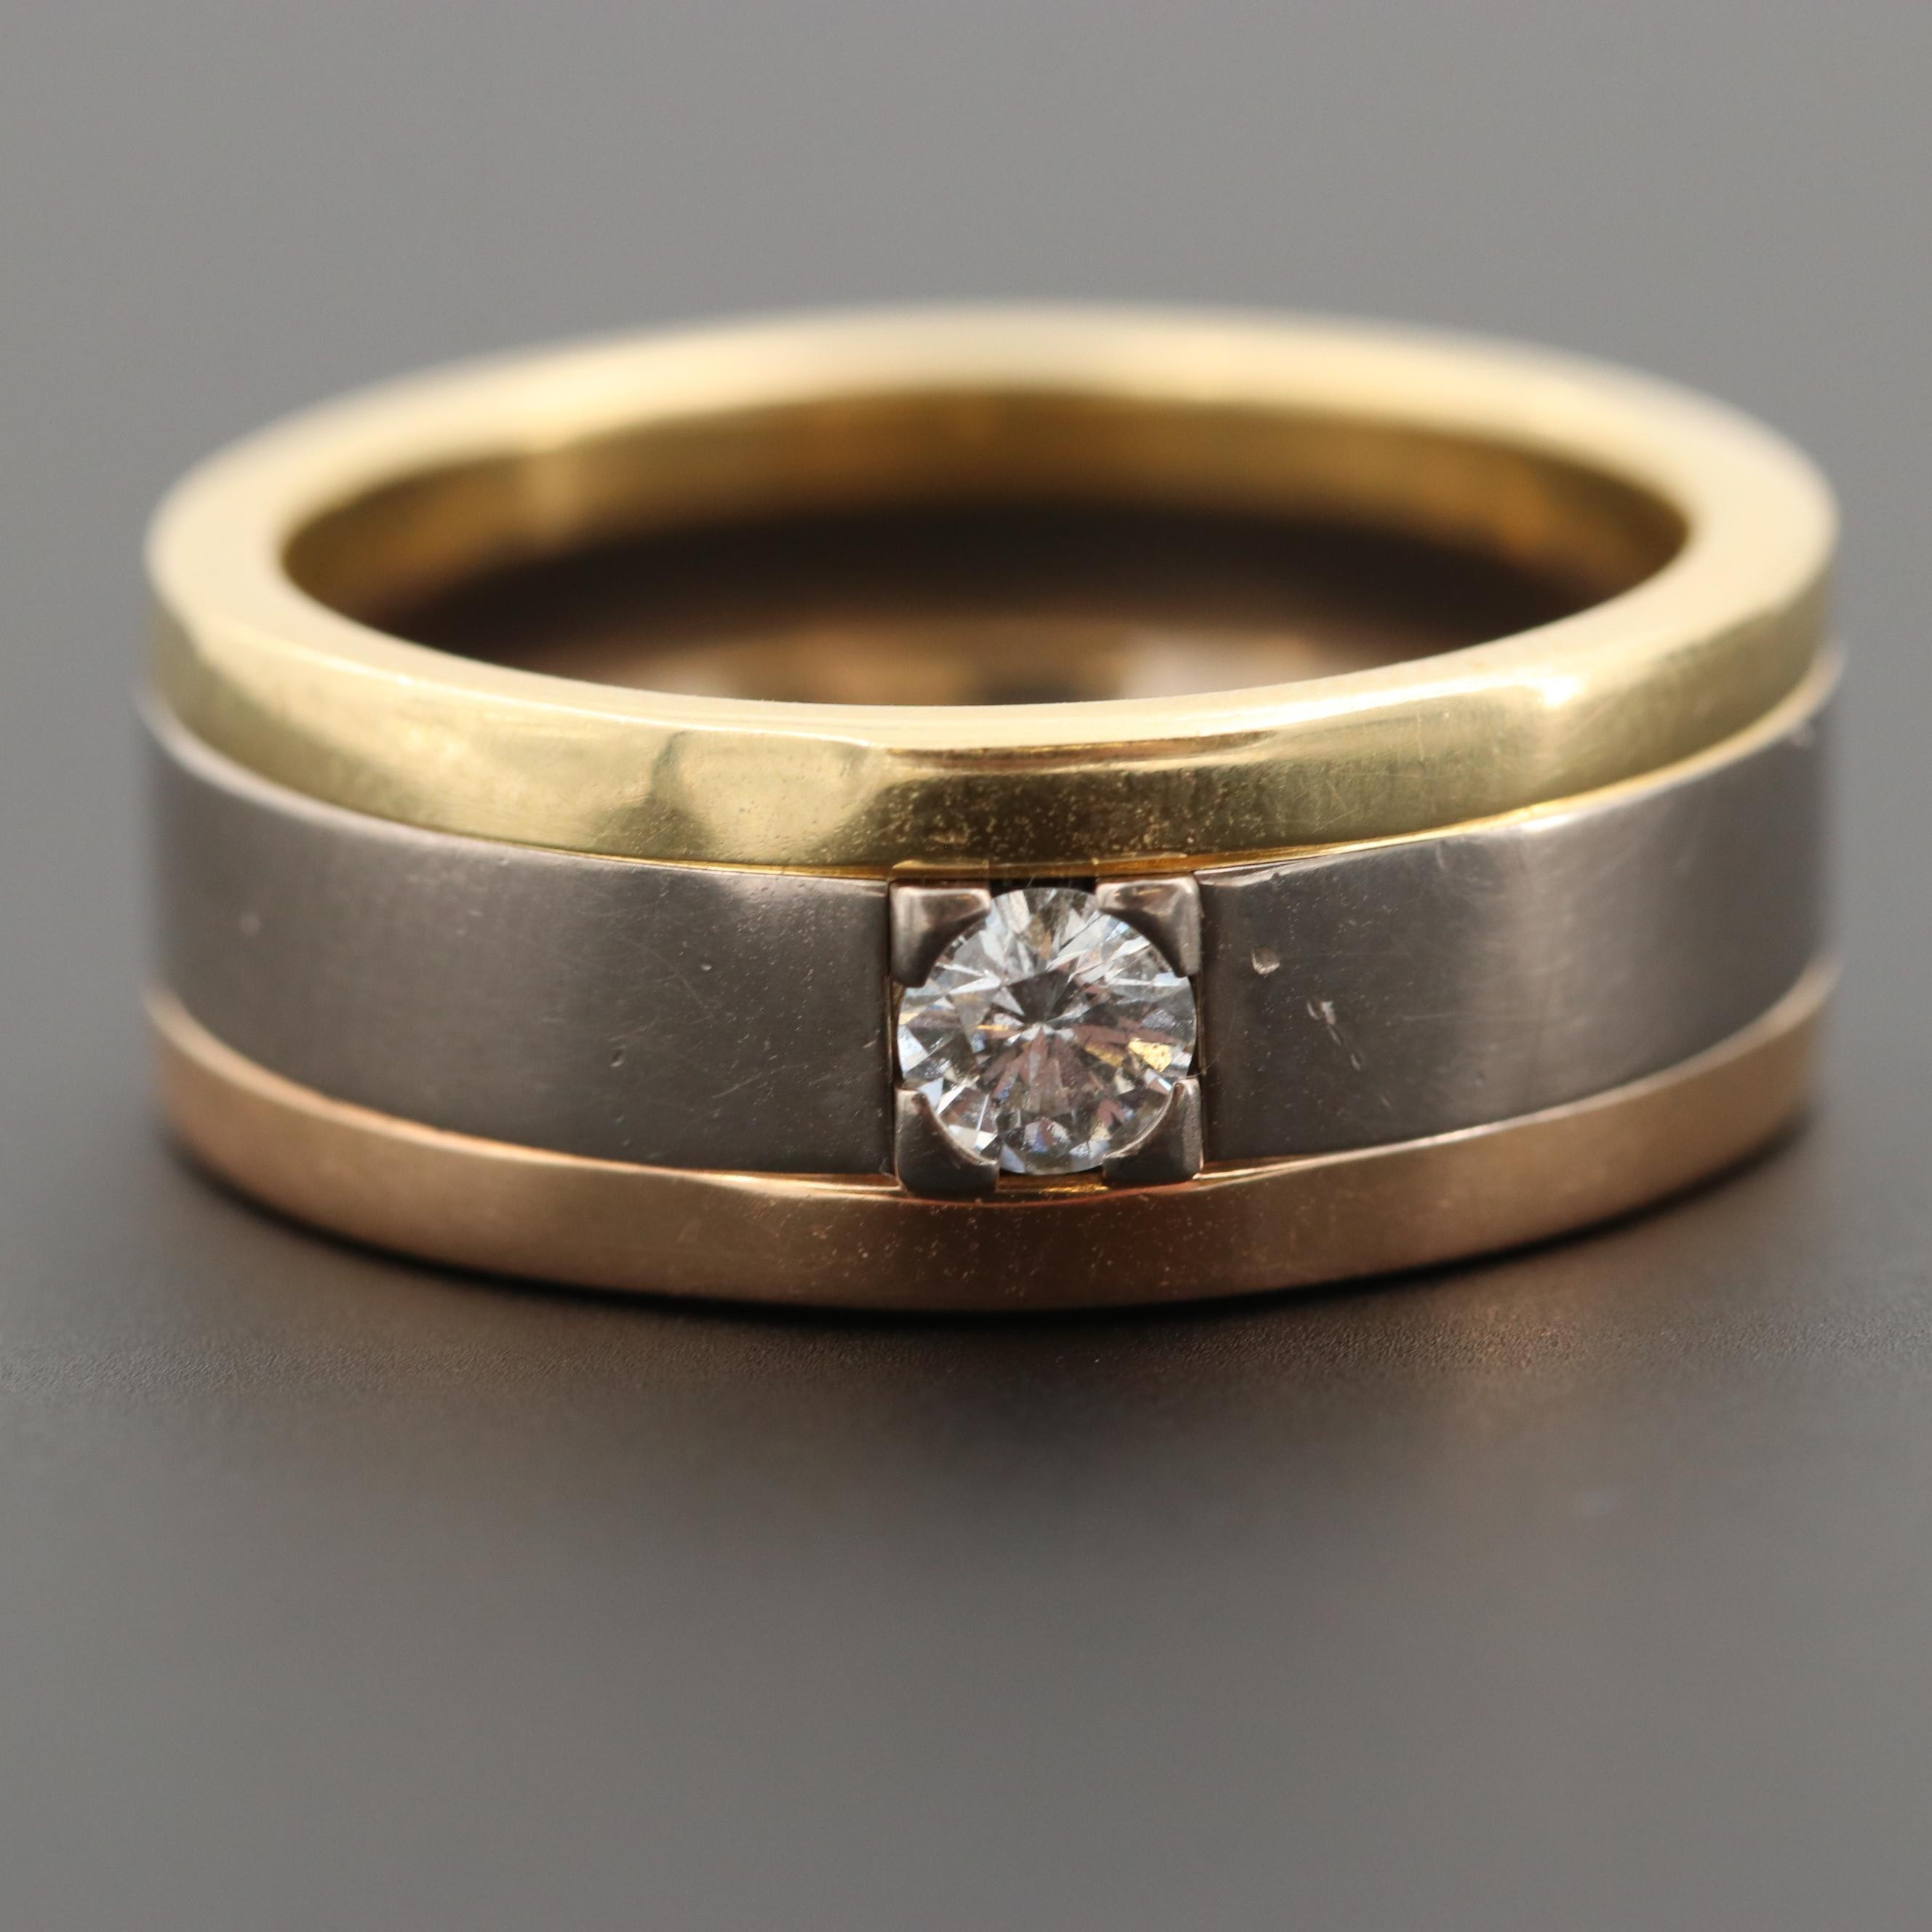 Cartier 18K White, Yellow and Rose Gold Diamond Ring